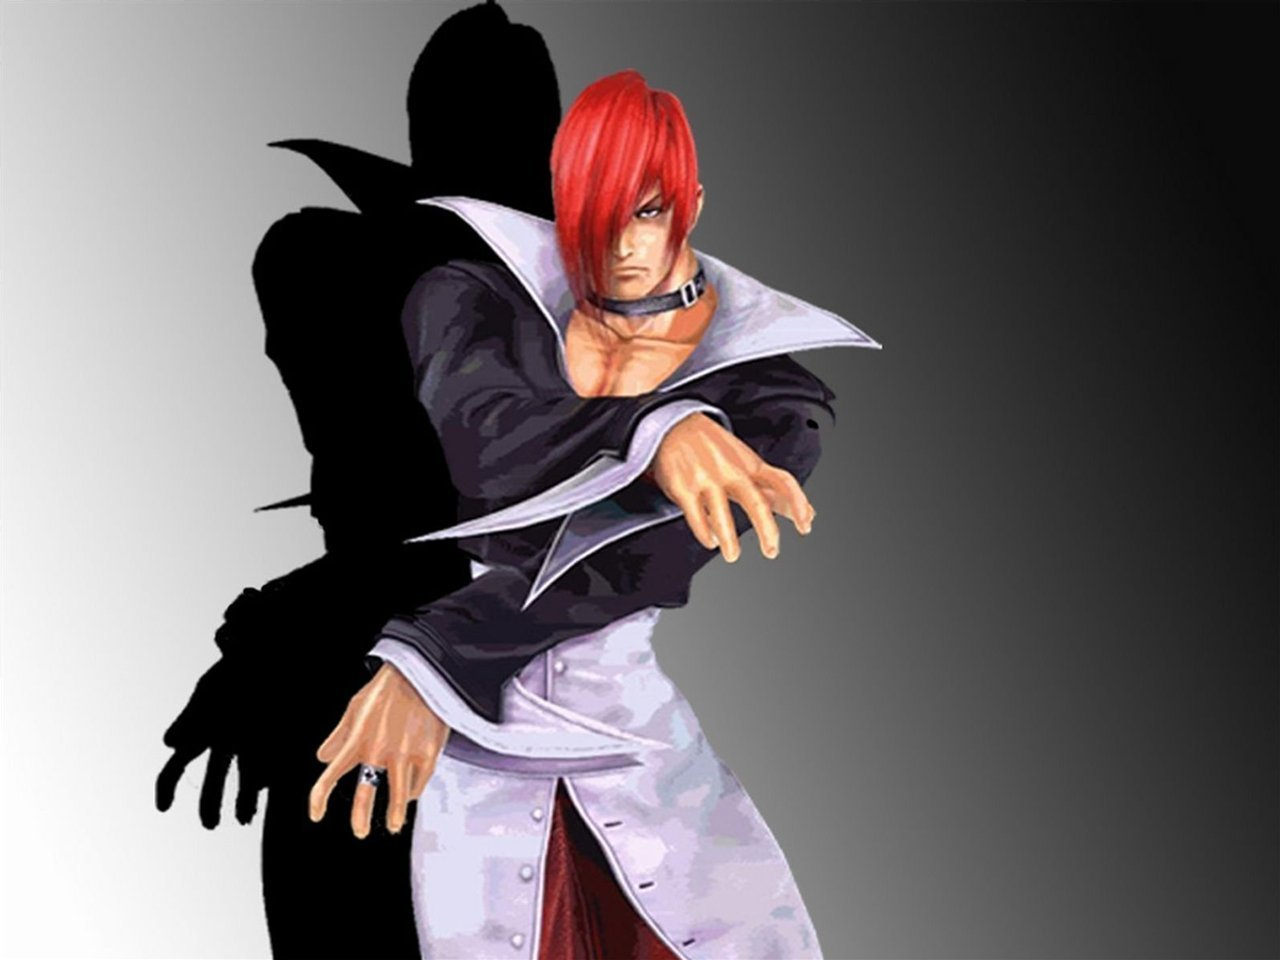 Kof Iori The King Of Fighters Wallpaper 13368607 Fanpop